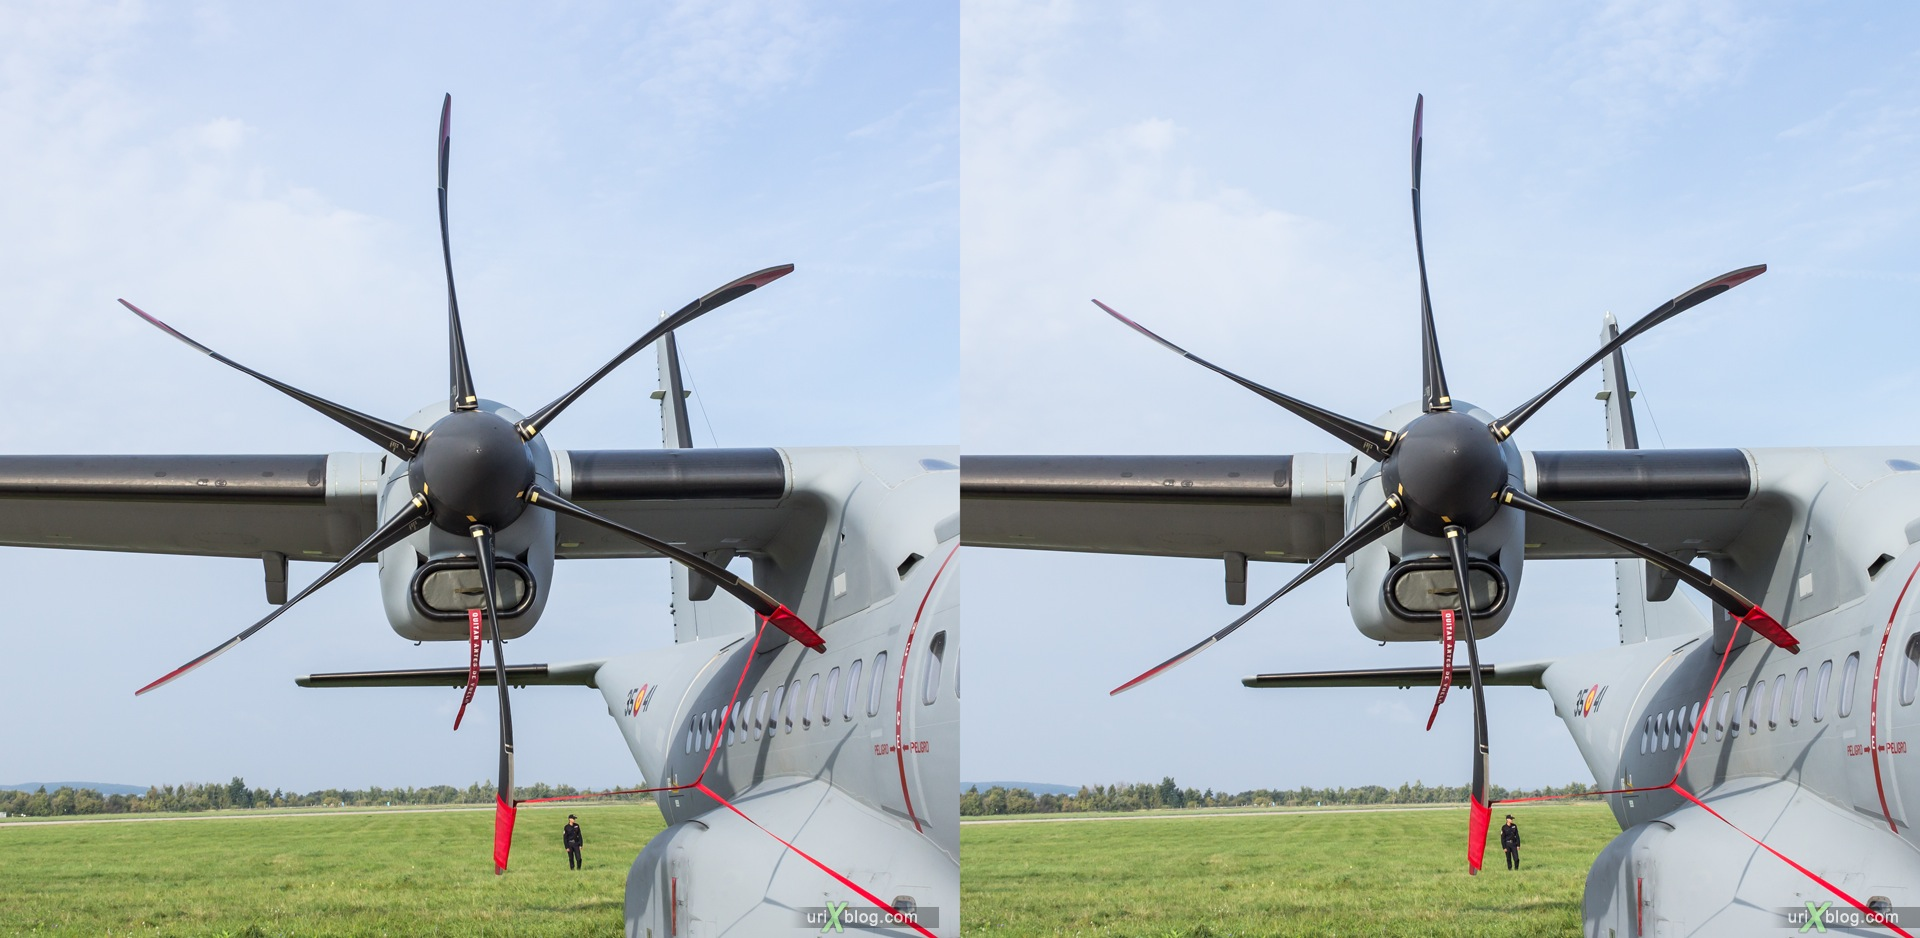 2013, Airbus C-295M Casa, MAKS, International Aviation and Space Salon, Russia, Ramenskoye airfield, airplane, 3D, stereo pair, cross-eyed, crossview, cross view stereo pair, stereoscopic